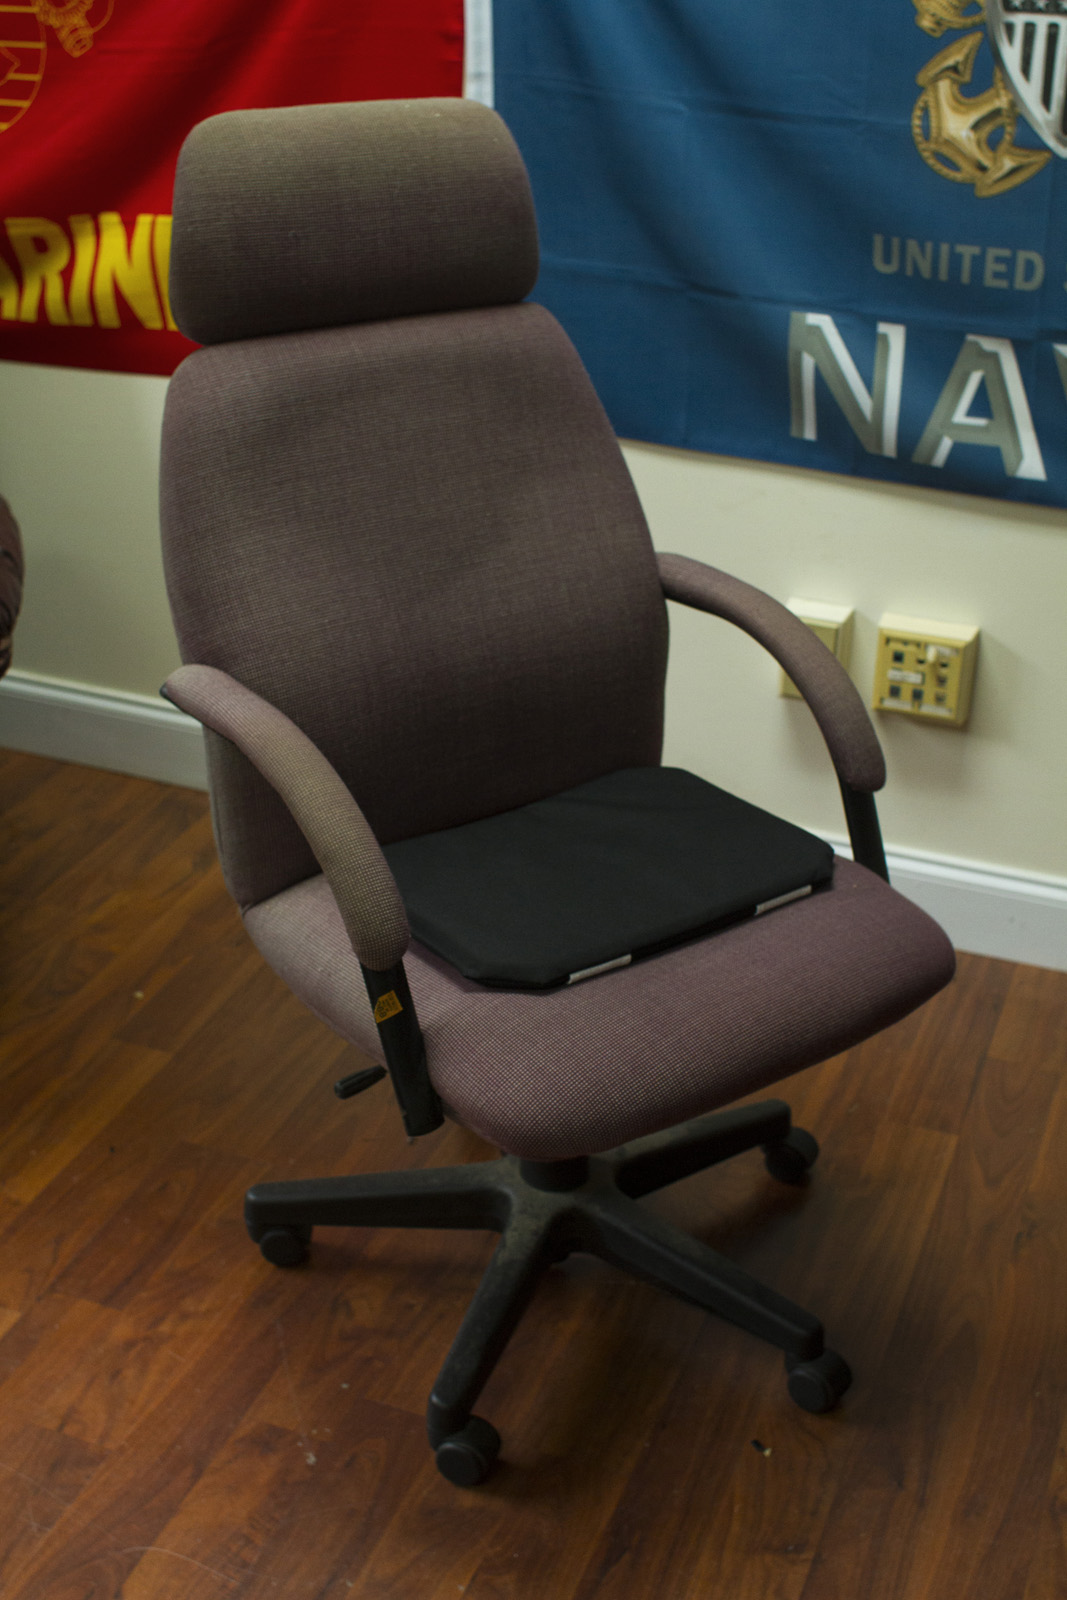 chairseat